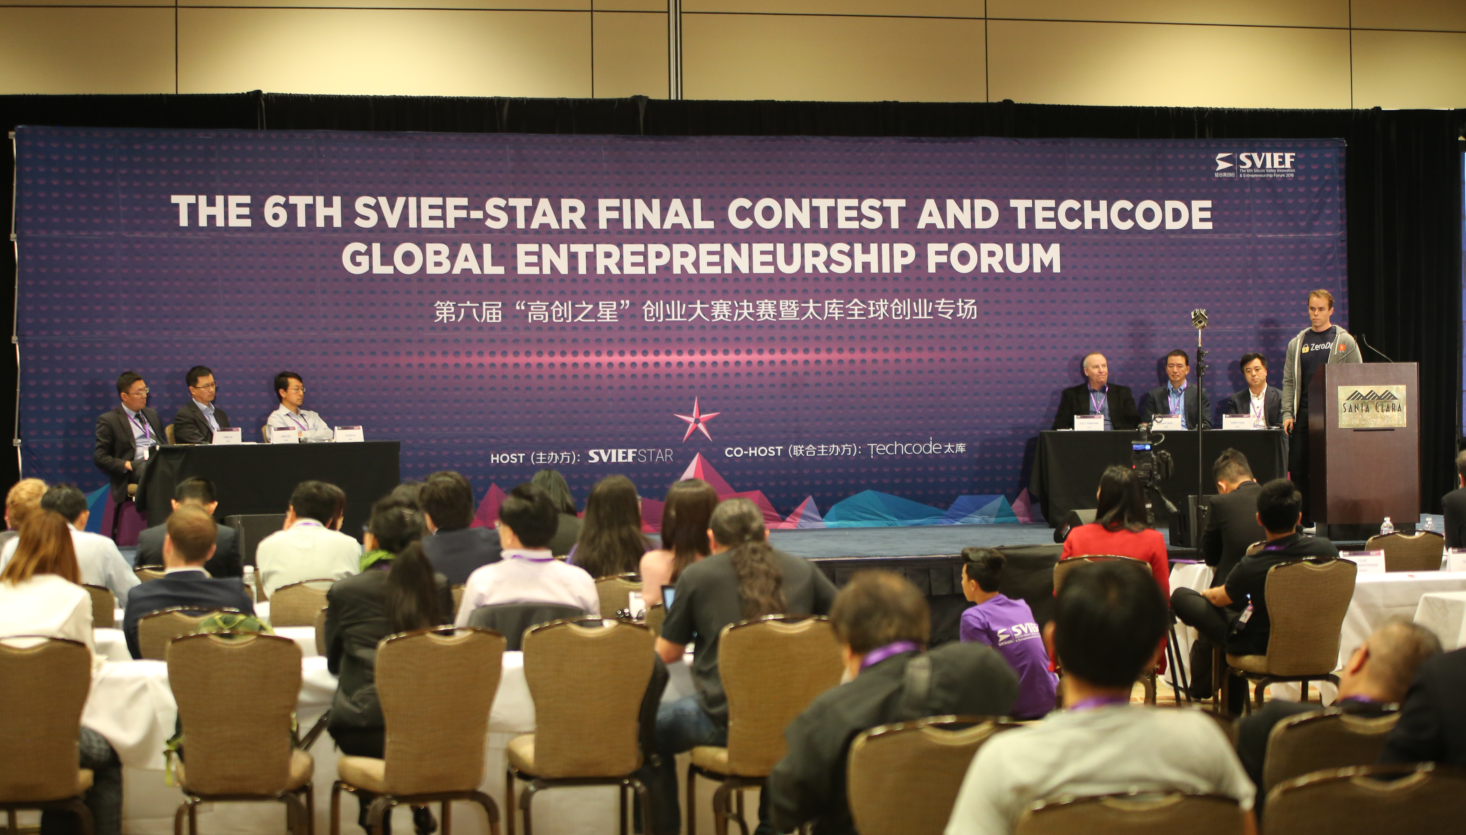 The 6th SVIEF Startup Final Contest (SVIEF)